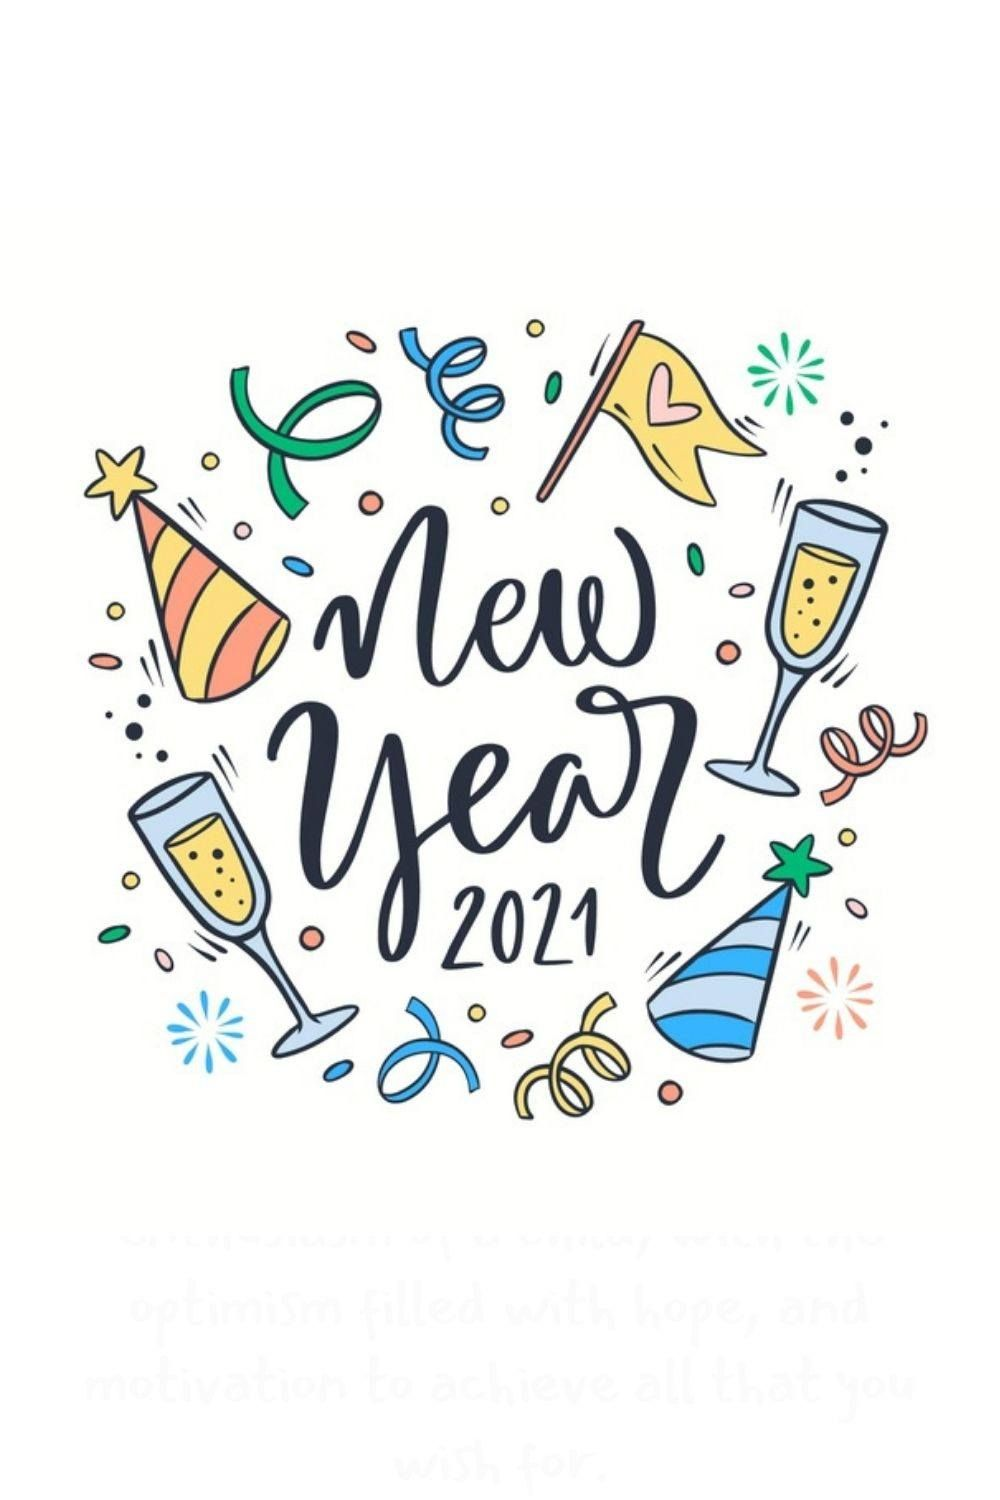 Happy New Year Wallpapers Creative 2021 Hd Iphone Backgrounds New Year Wallpaper Happy New Year Wallpaper Happy New Year Images